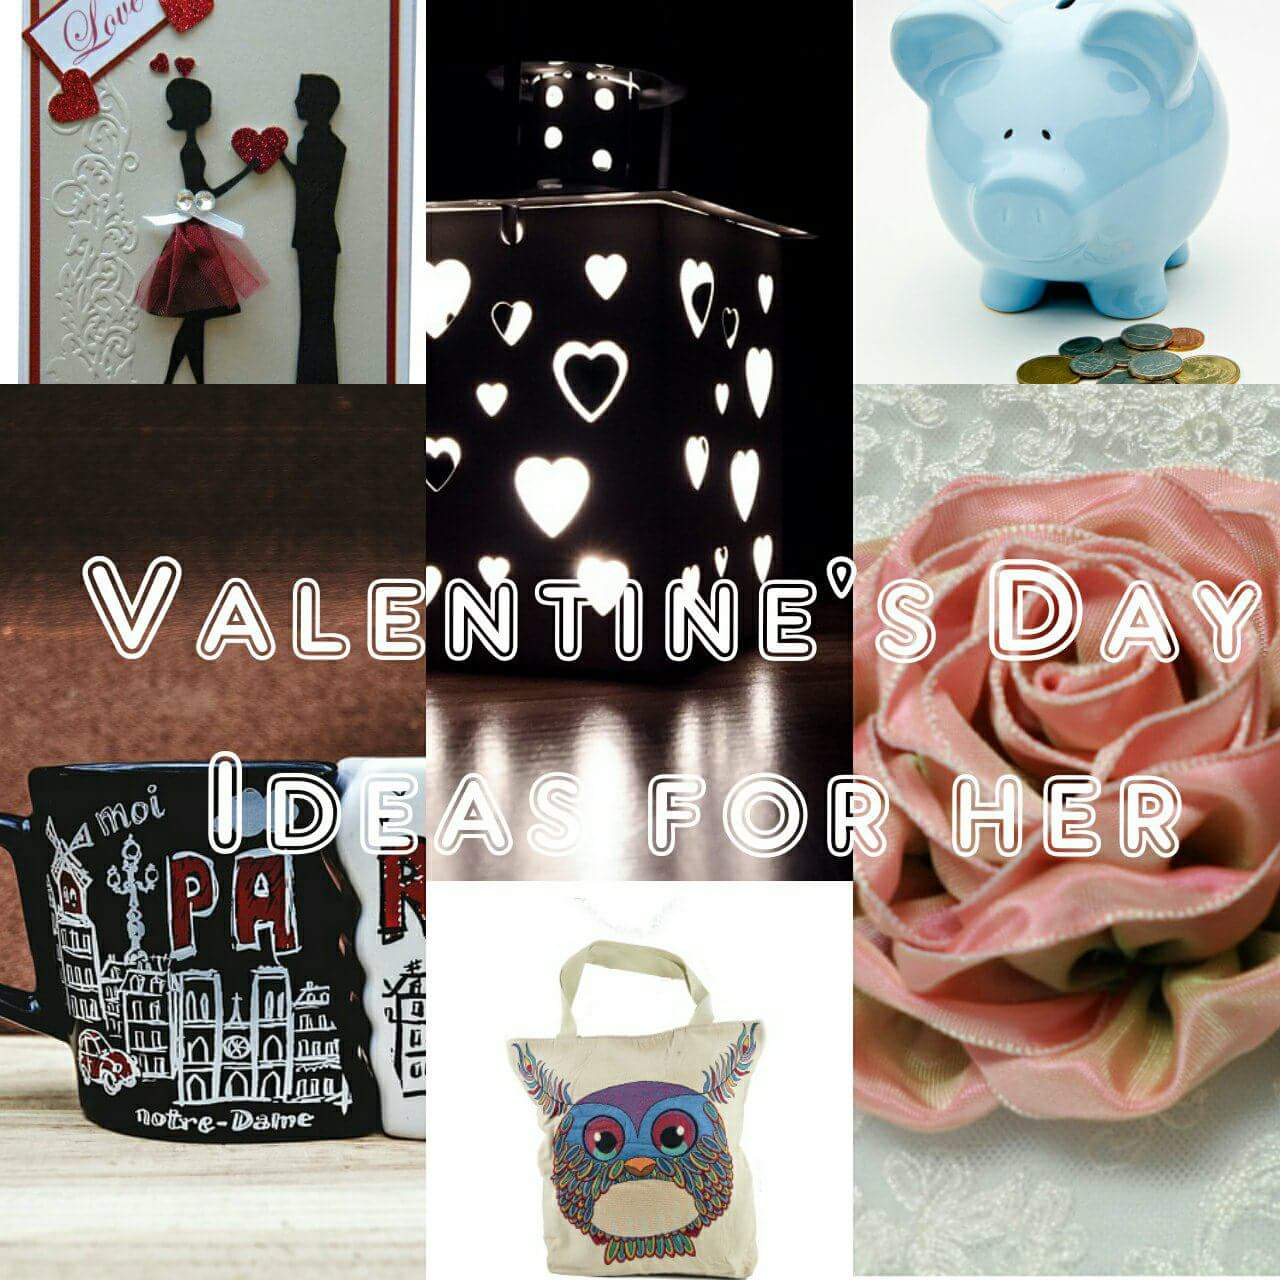 Valentine's Day Ideas For Her